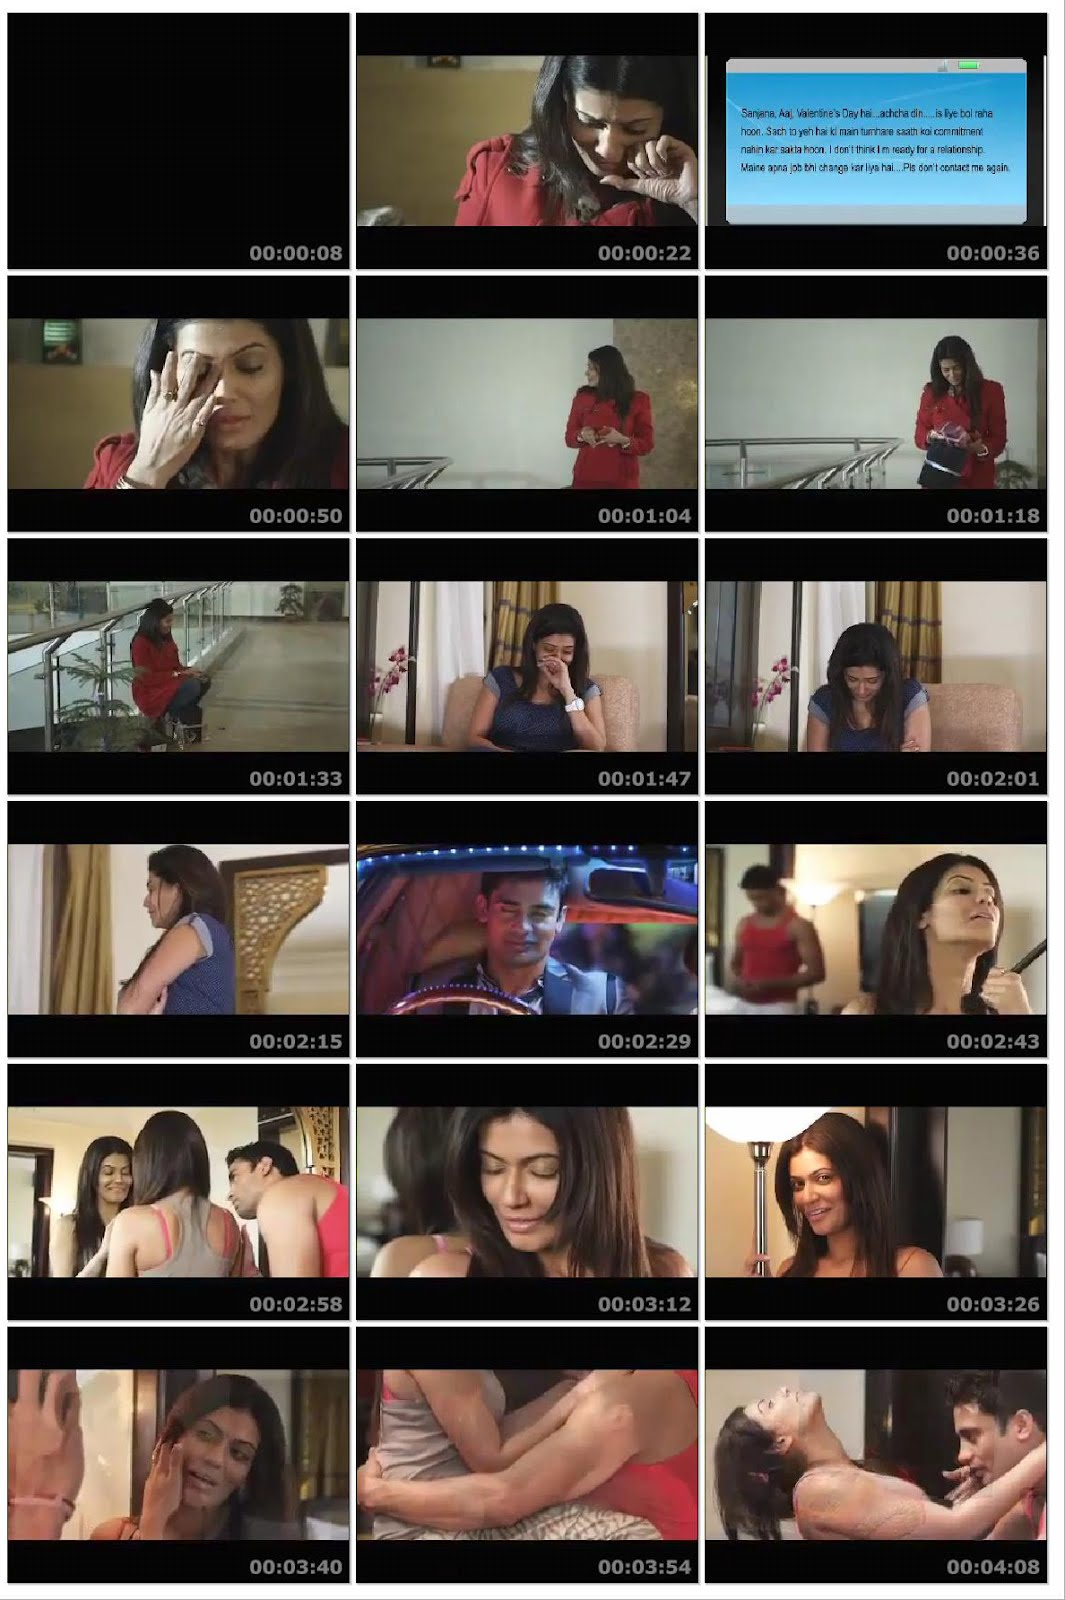 Ooo Ree Bawara Video (Valentine's Night 2012) Download